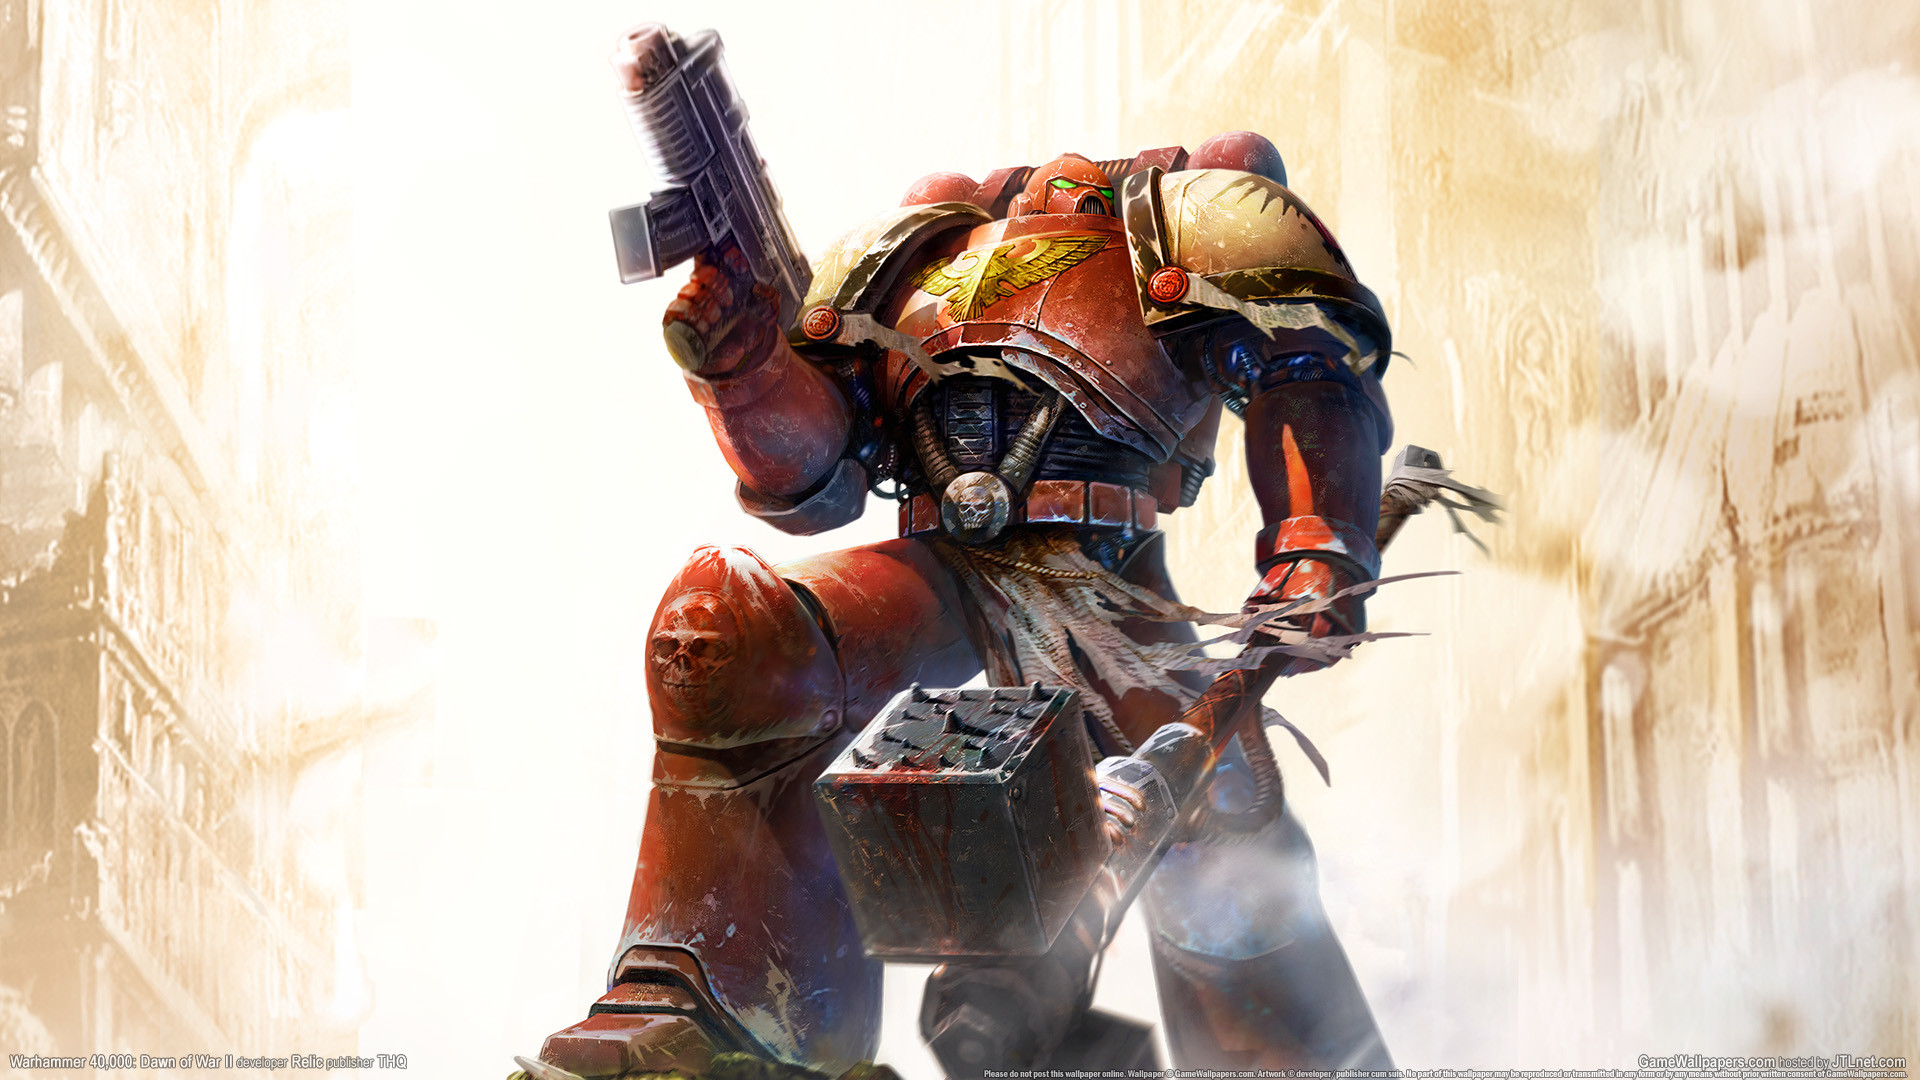 Warhammer 40k death company wallpaper - 1920x1080 Warhammer 40k Space Marine Blood Angels Chapter All Classes